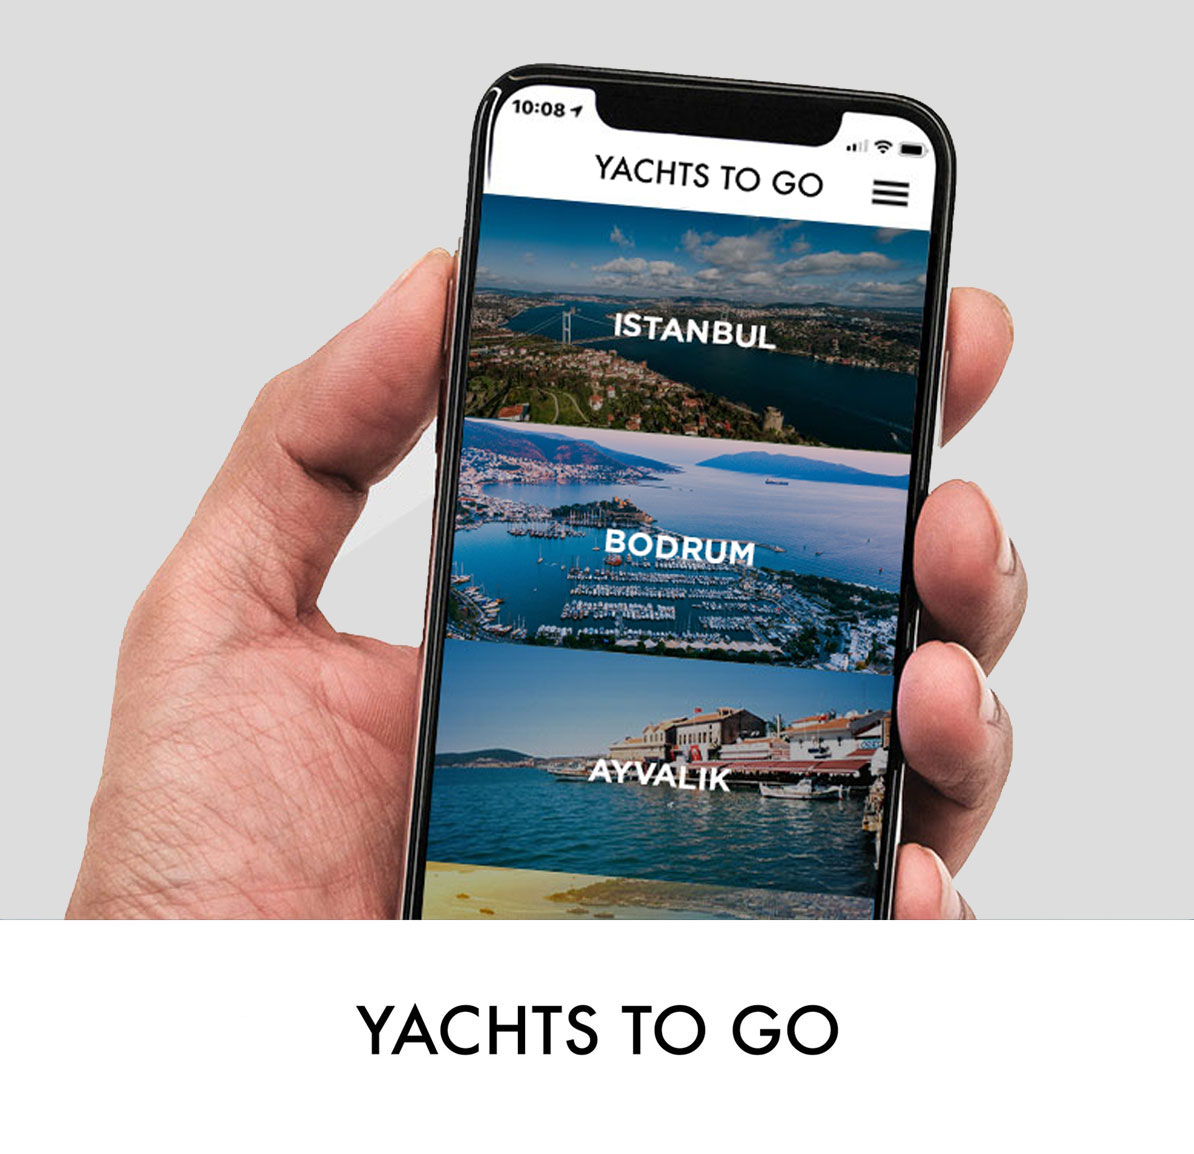 Yachts To Go